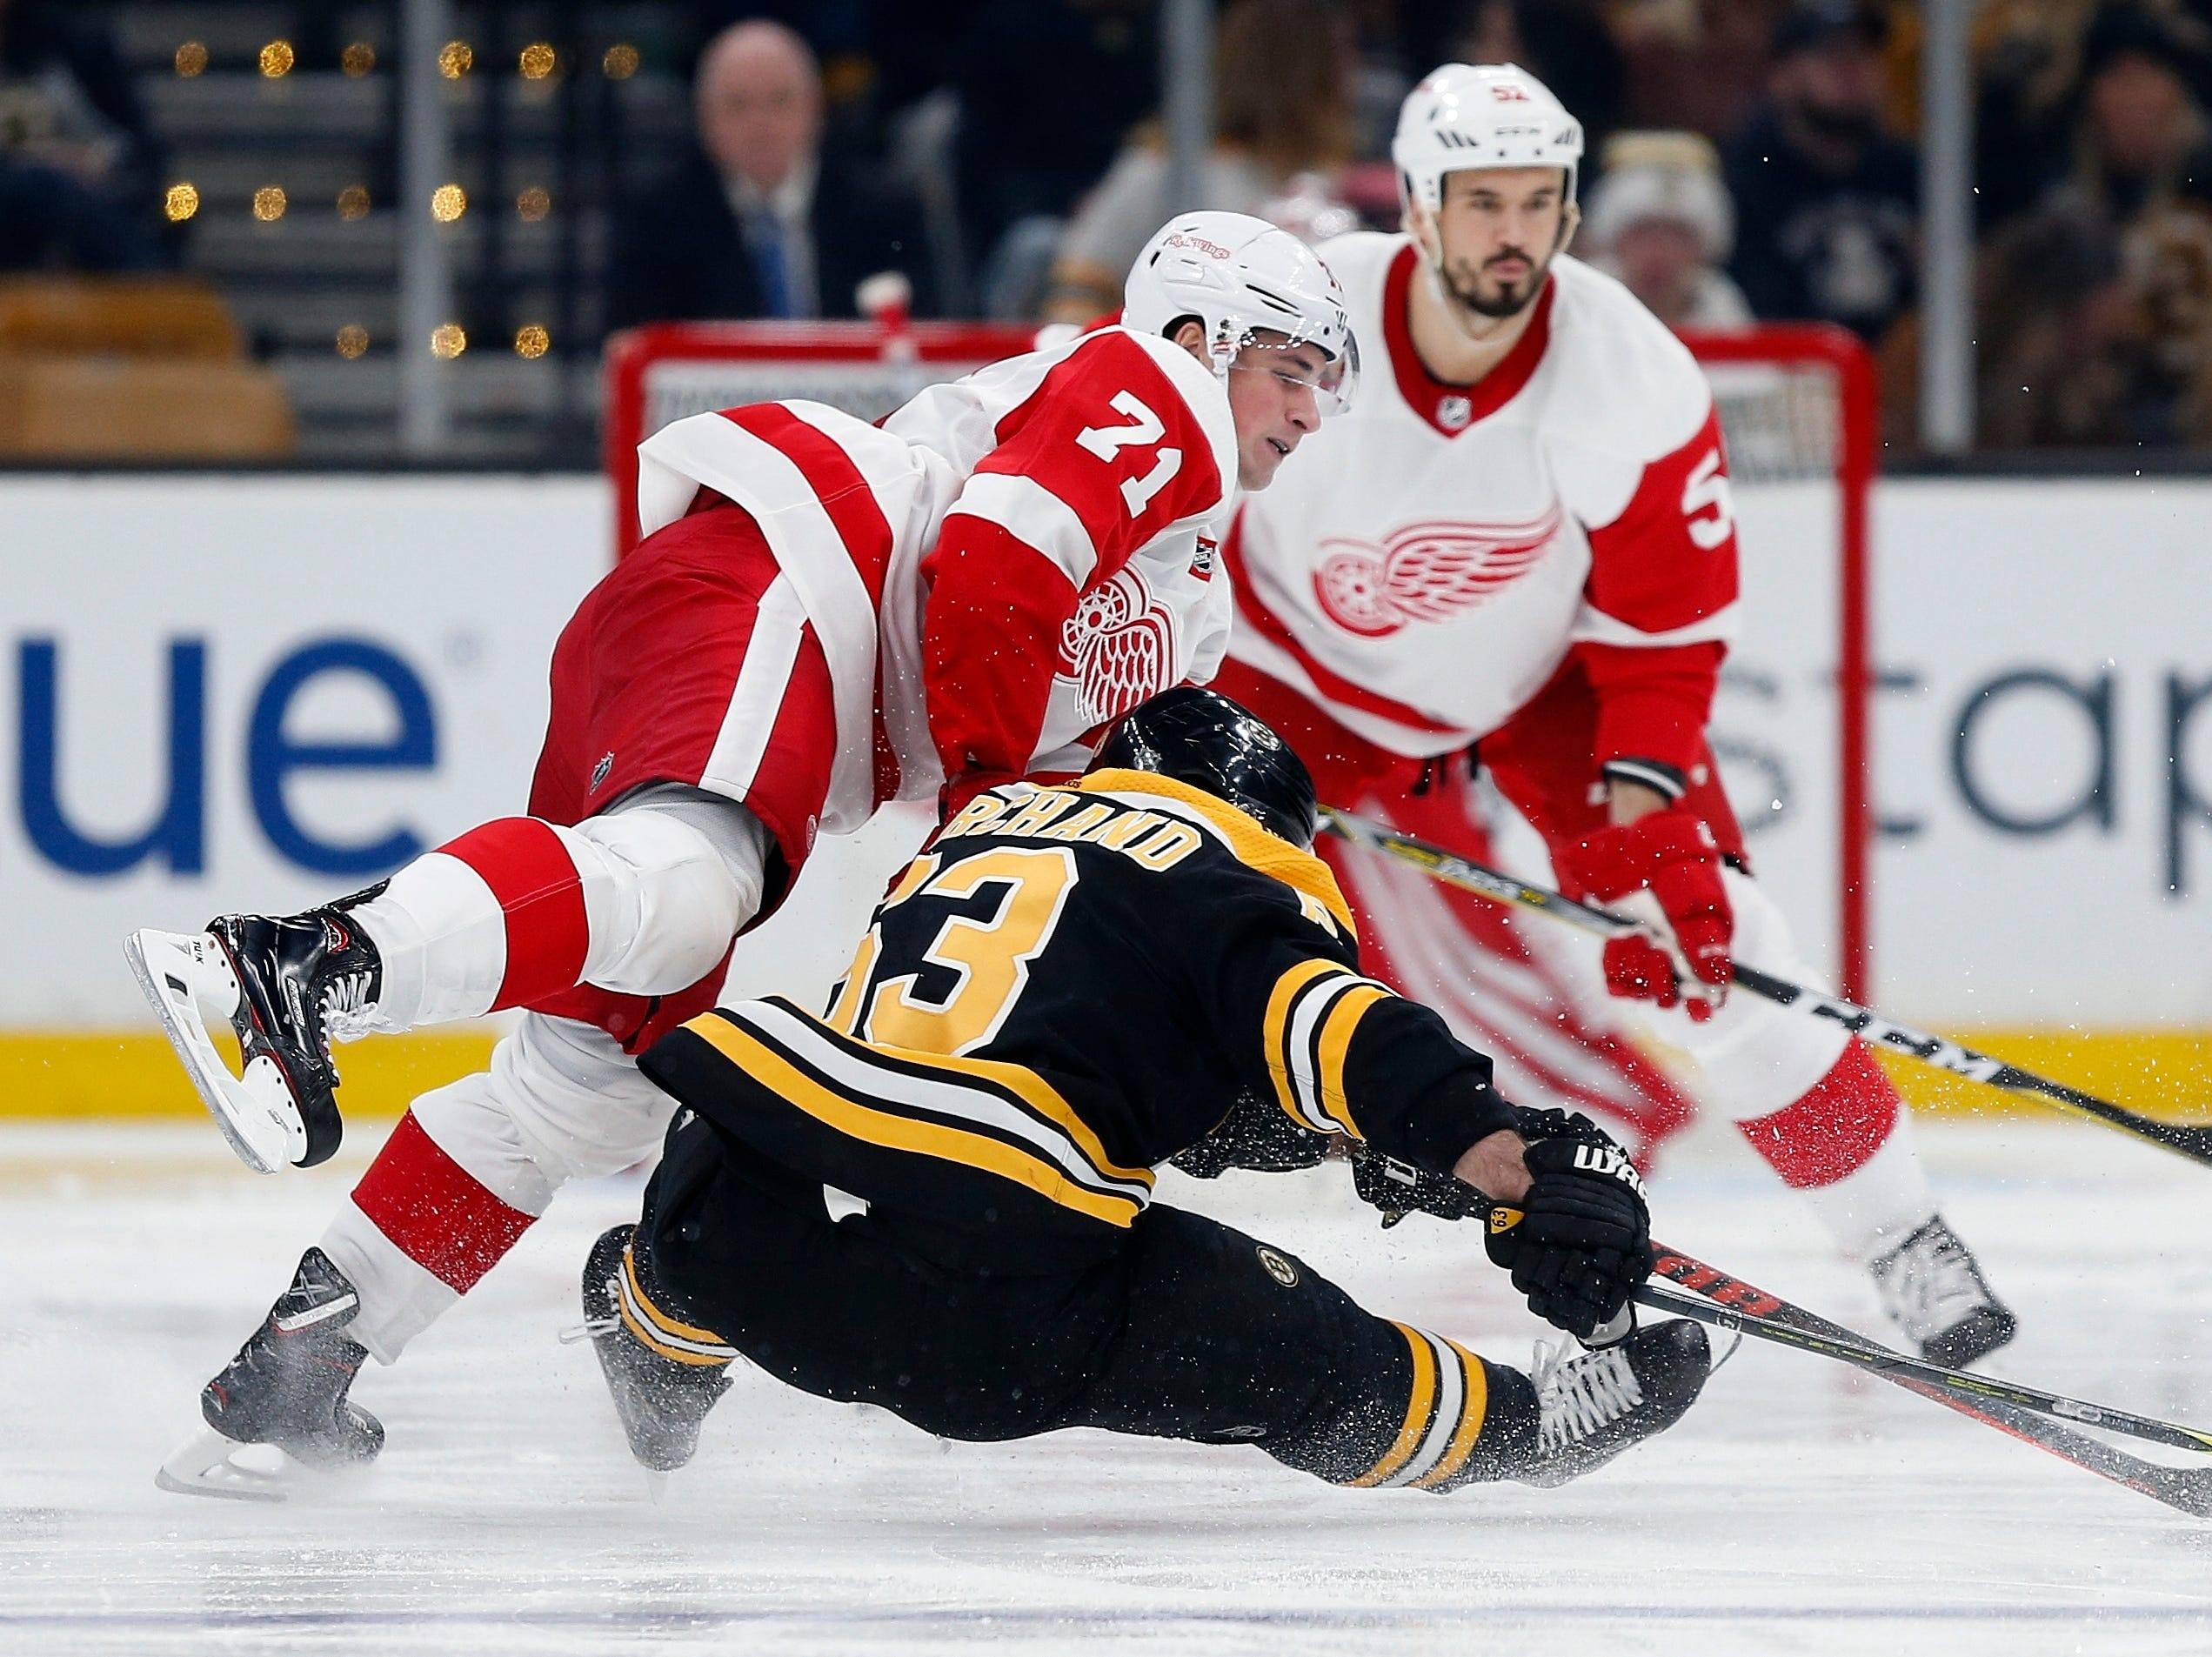 Detroit Red Wings' Dylan Larkin (71) and Boston Bruins' Brad Marchand (63) collide during the third period.